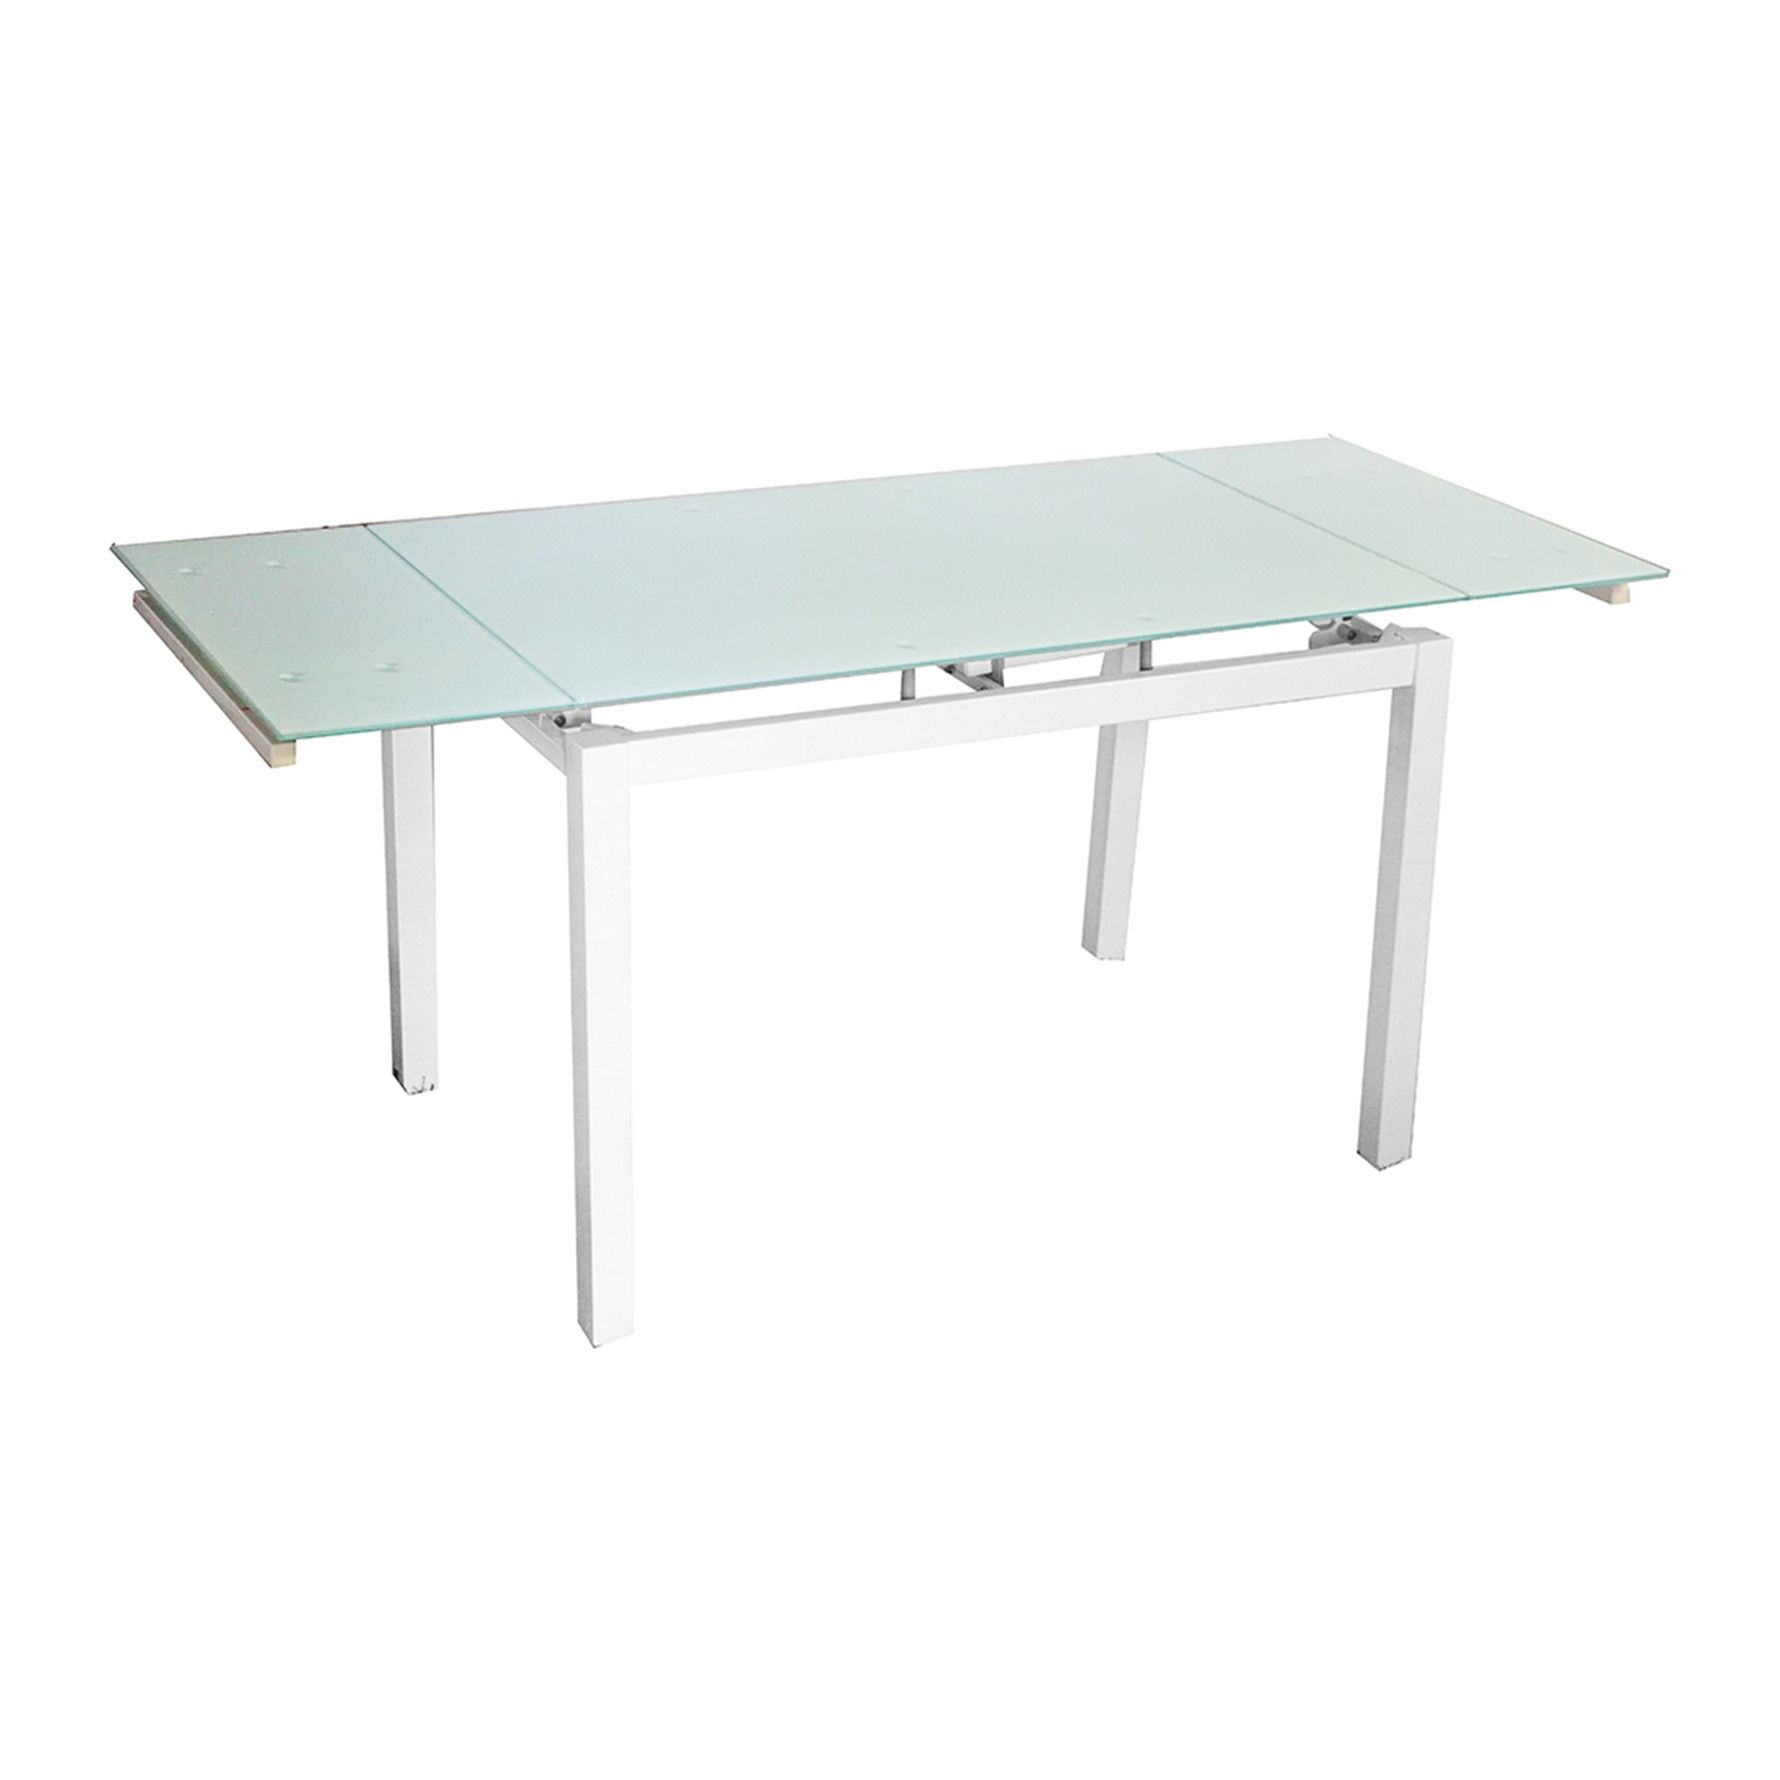 Deco in paris table a manger extensible blanche gisborne for Table a manger blanche